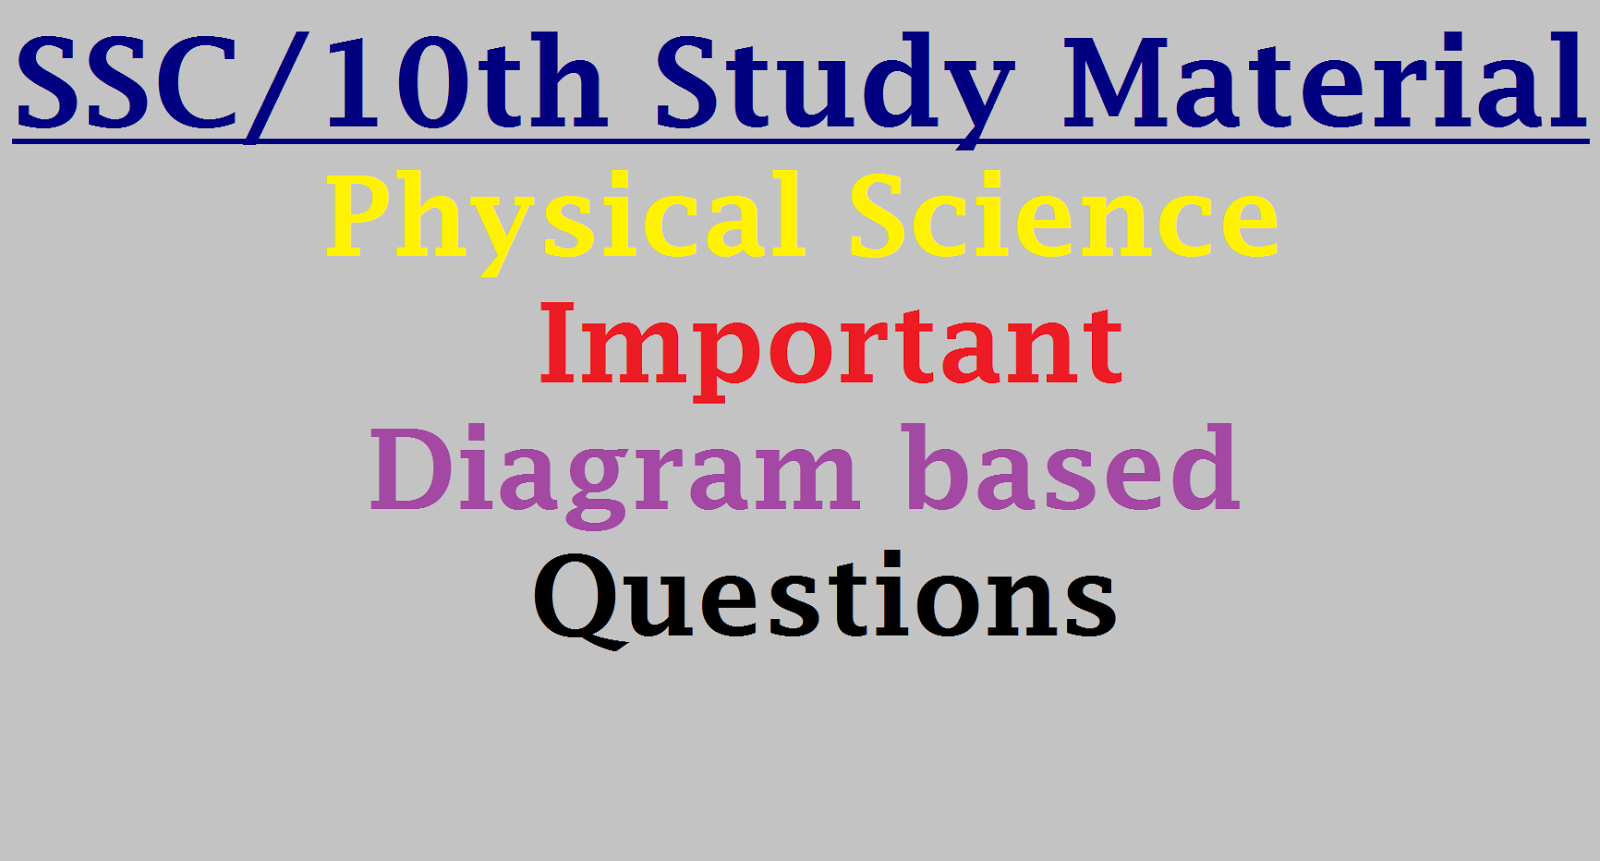 science diagrams of class 10 western 1000 salt spreader wiring diagram 10th physical important based